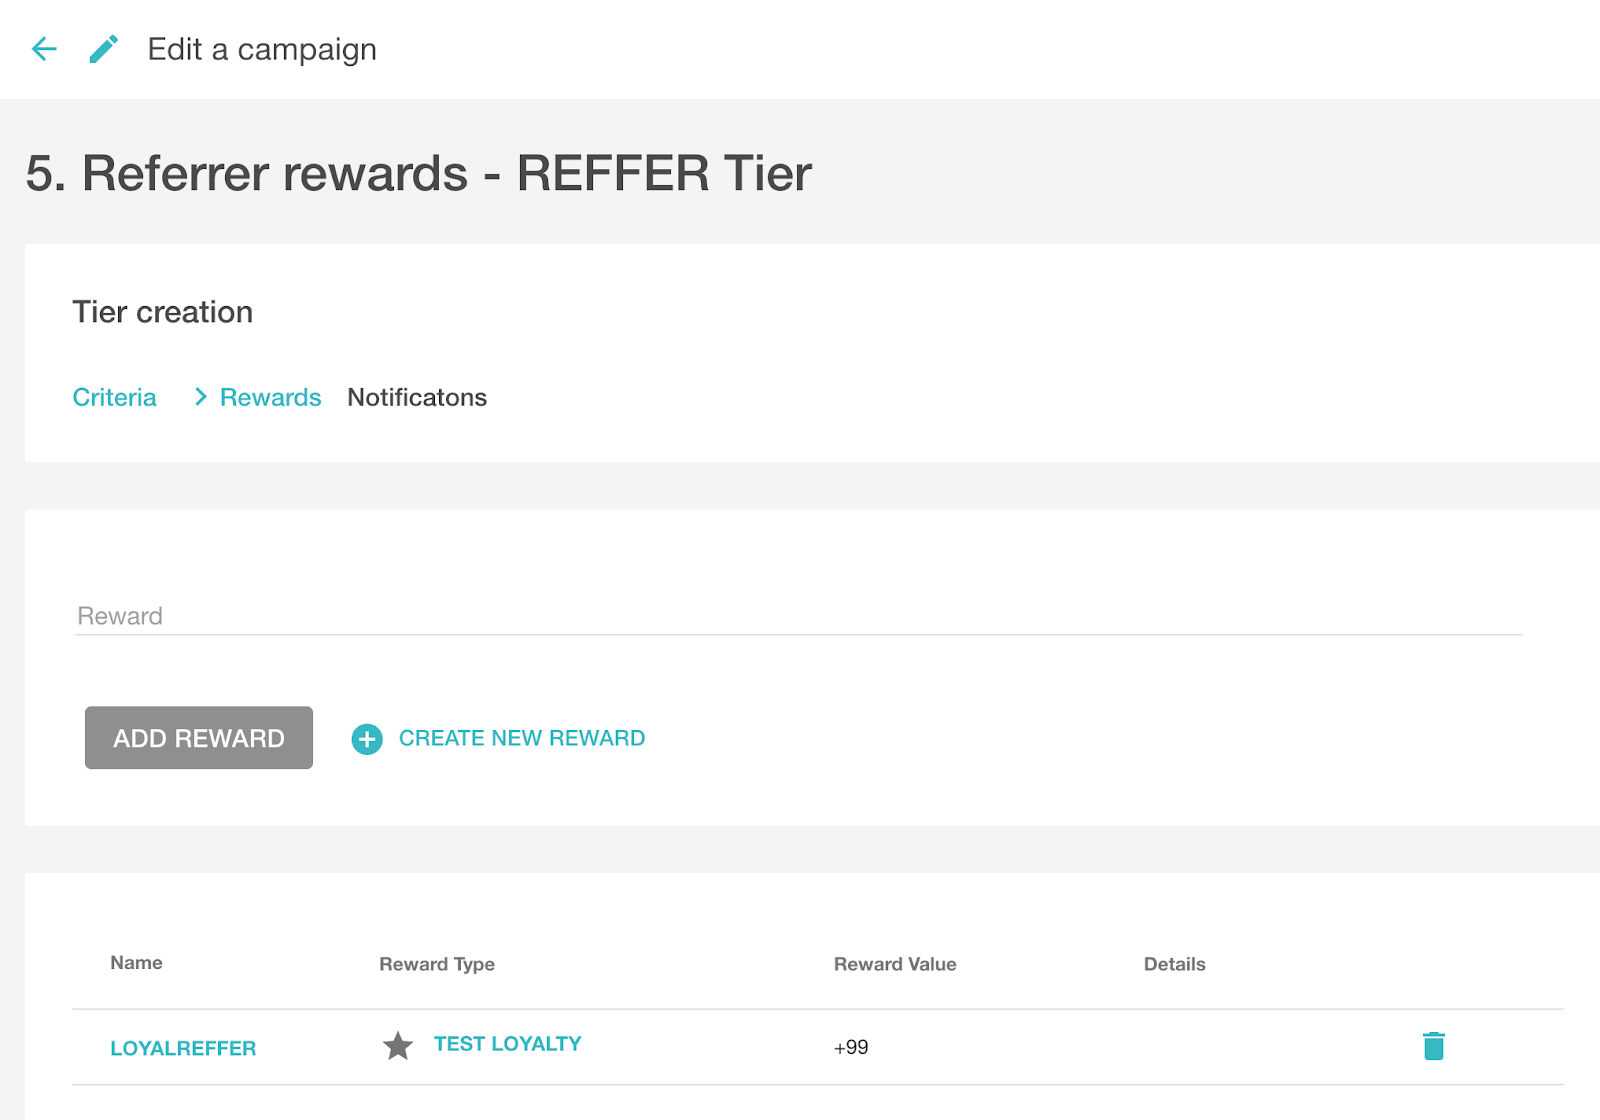 Referrer reward